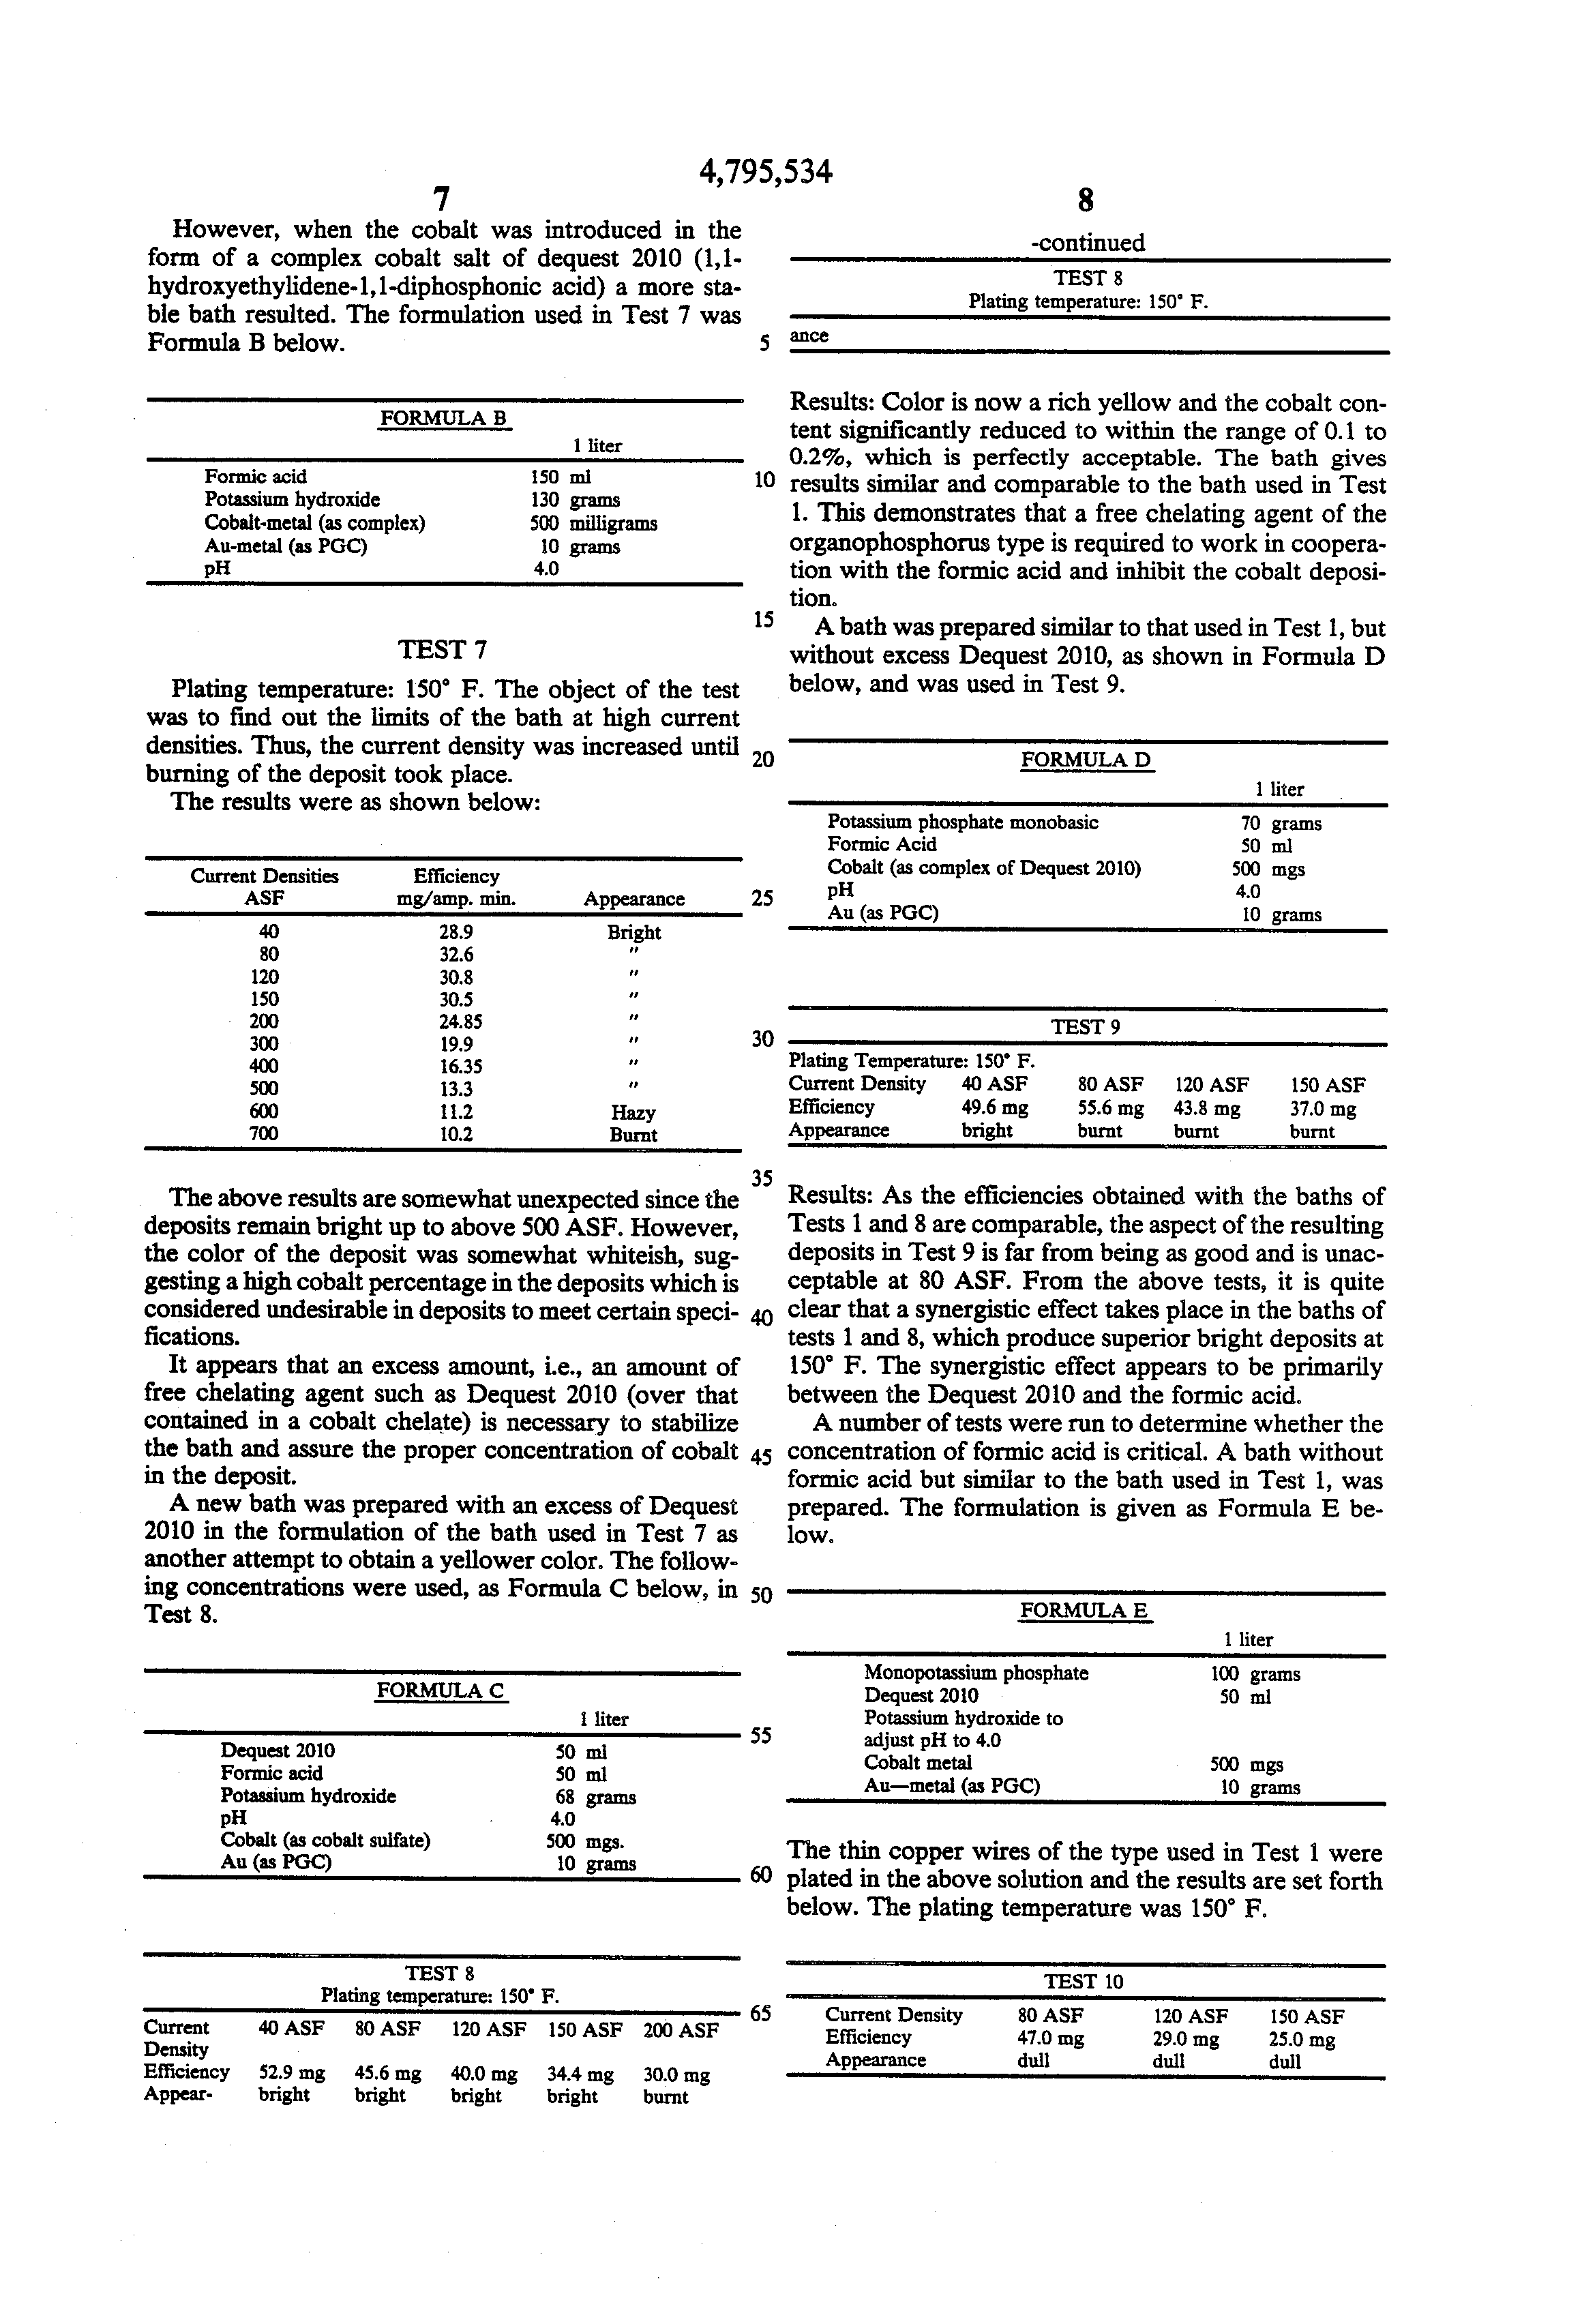 Brevet US4795534 - Electrolyte solution and process for gold